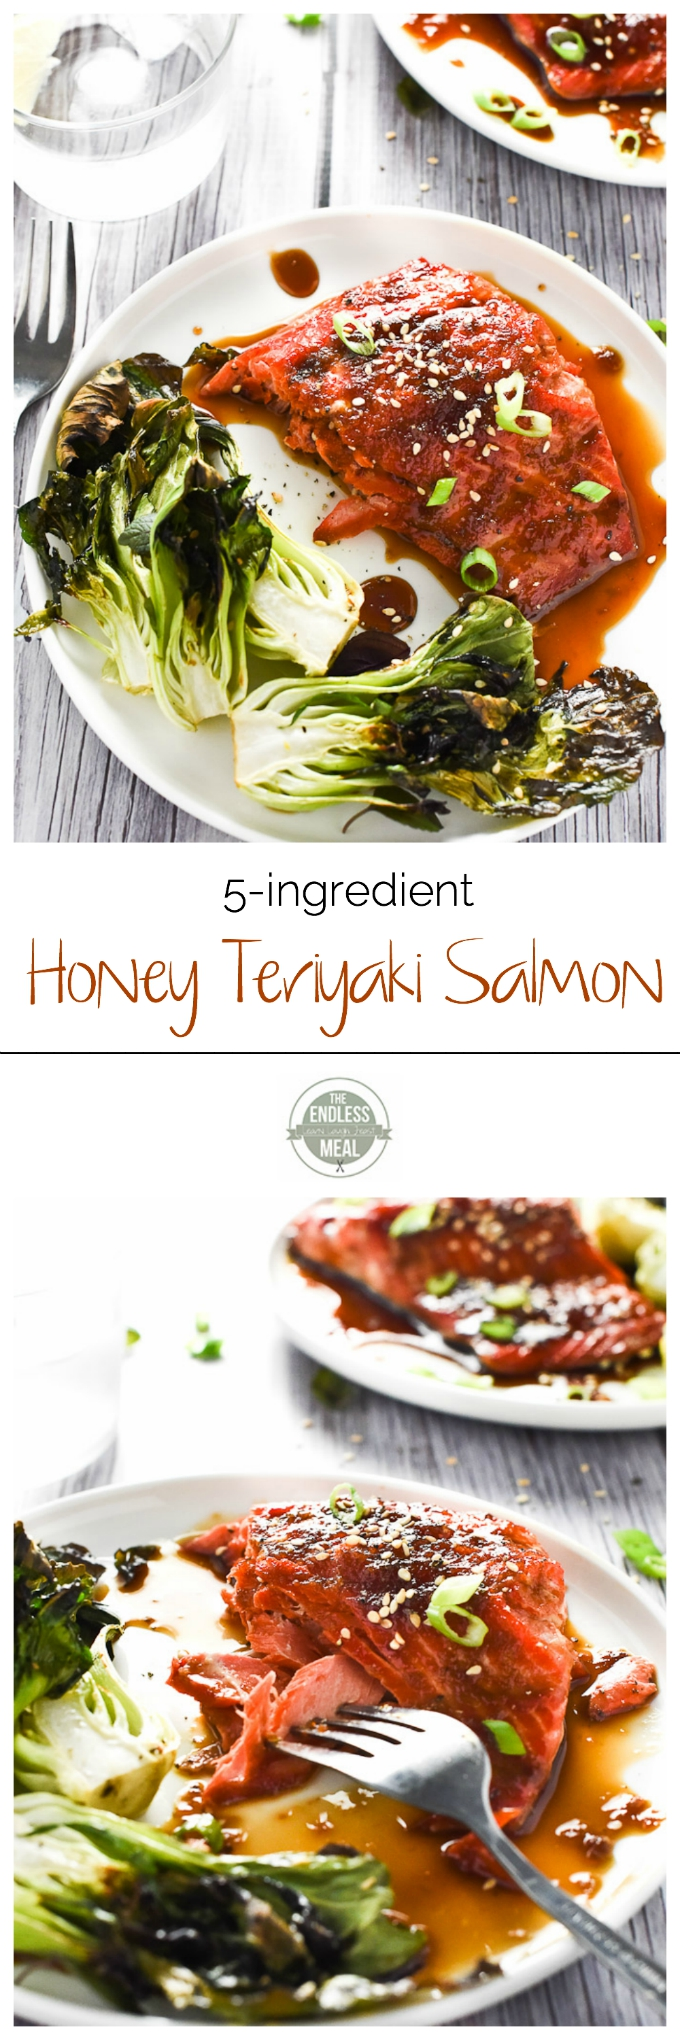 Honey Teriyaki Salmon #teriyakisalmon 5-Ingredient Honey Teriyaki Salmon #teriyakisalmon